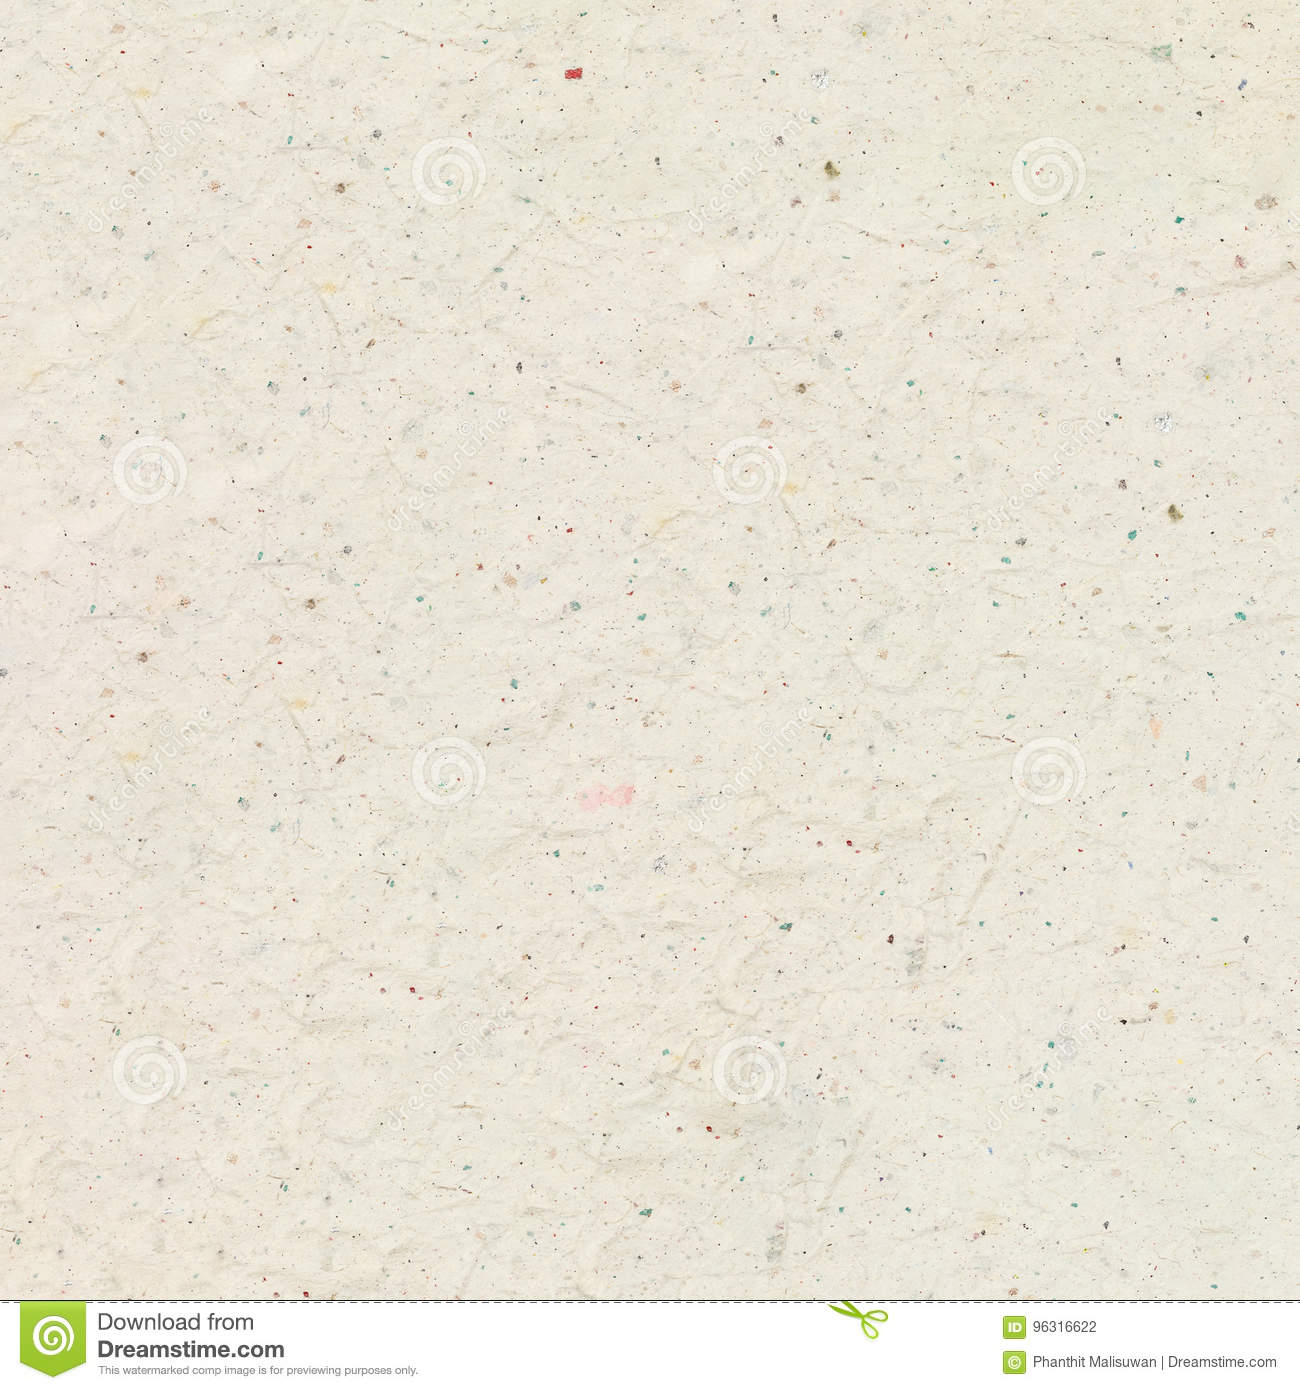 Recycled Crumpled Light Brown Paper Texture Background For Design